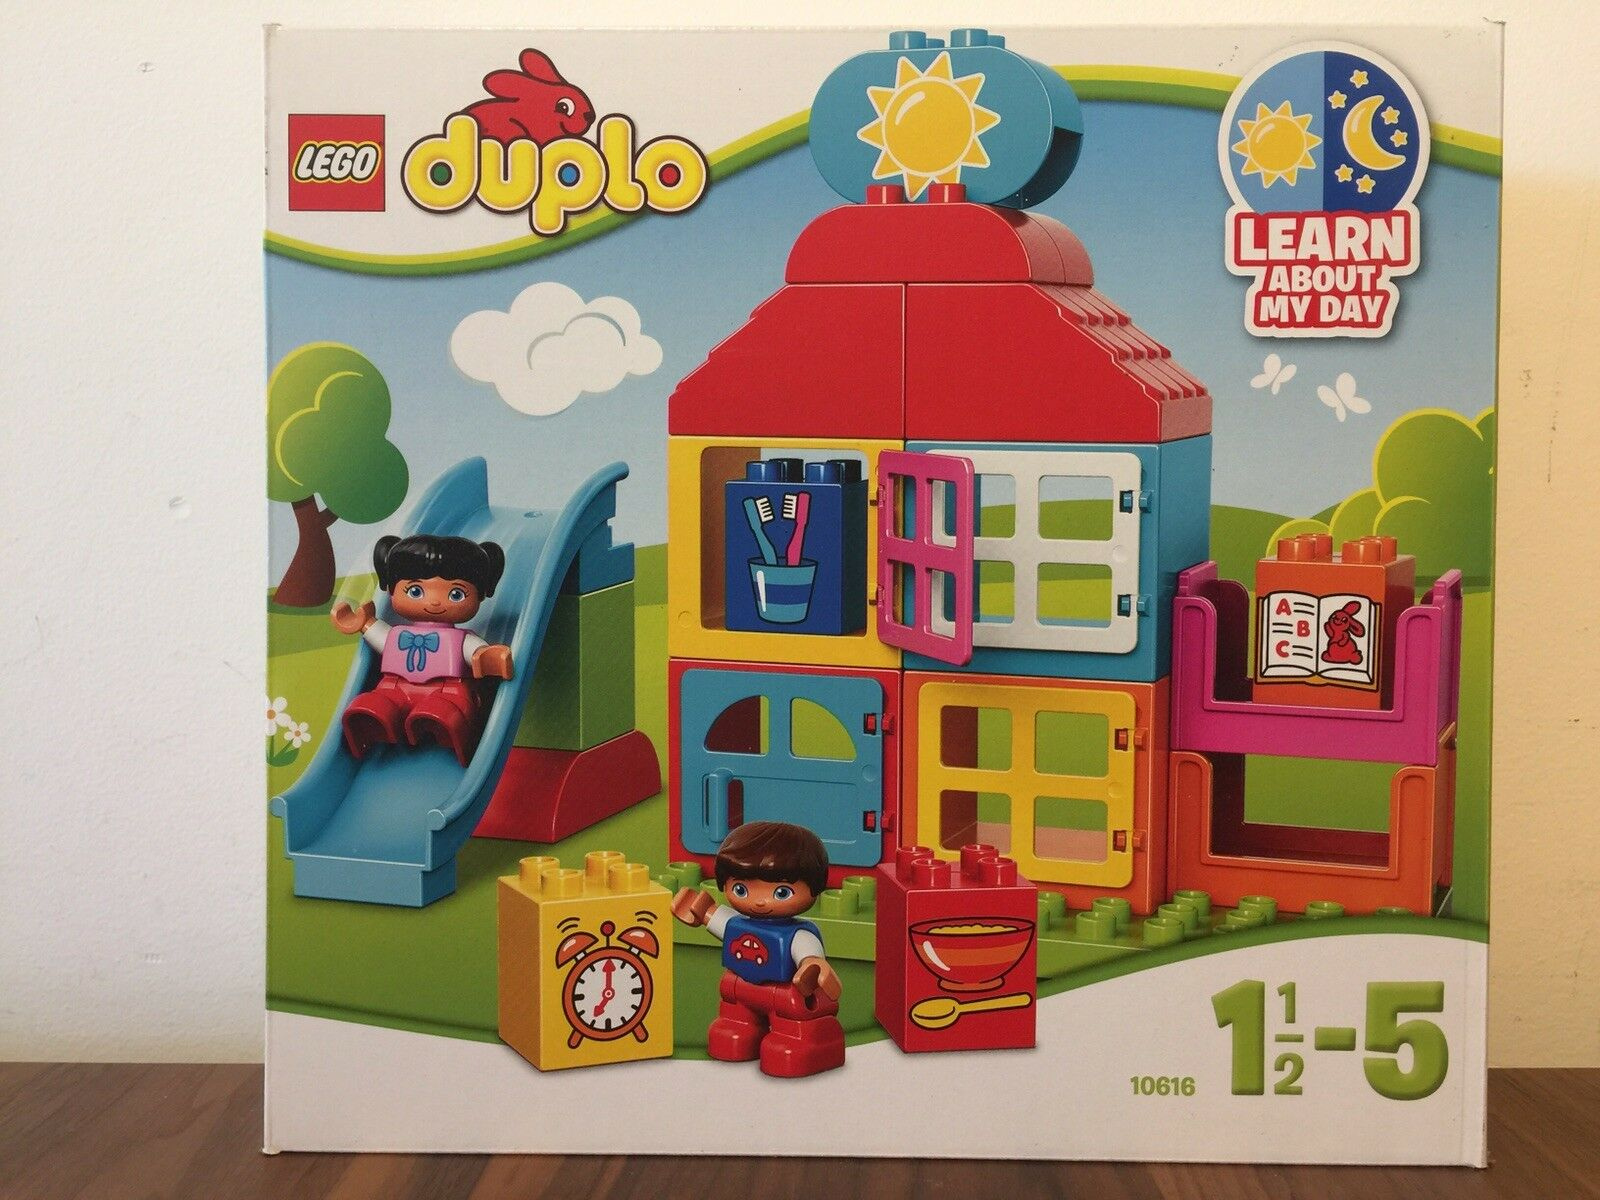 Lego Duplo My First Play House 10616 (Brand New Unopened) Recommended Age 1.5-5y